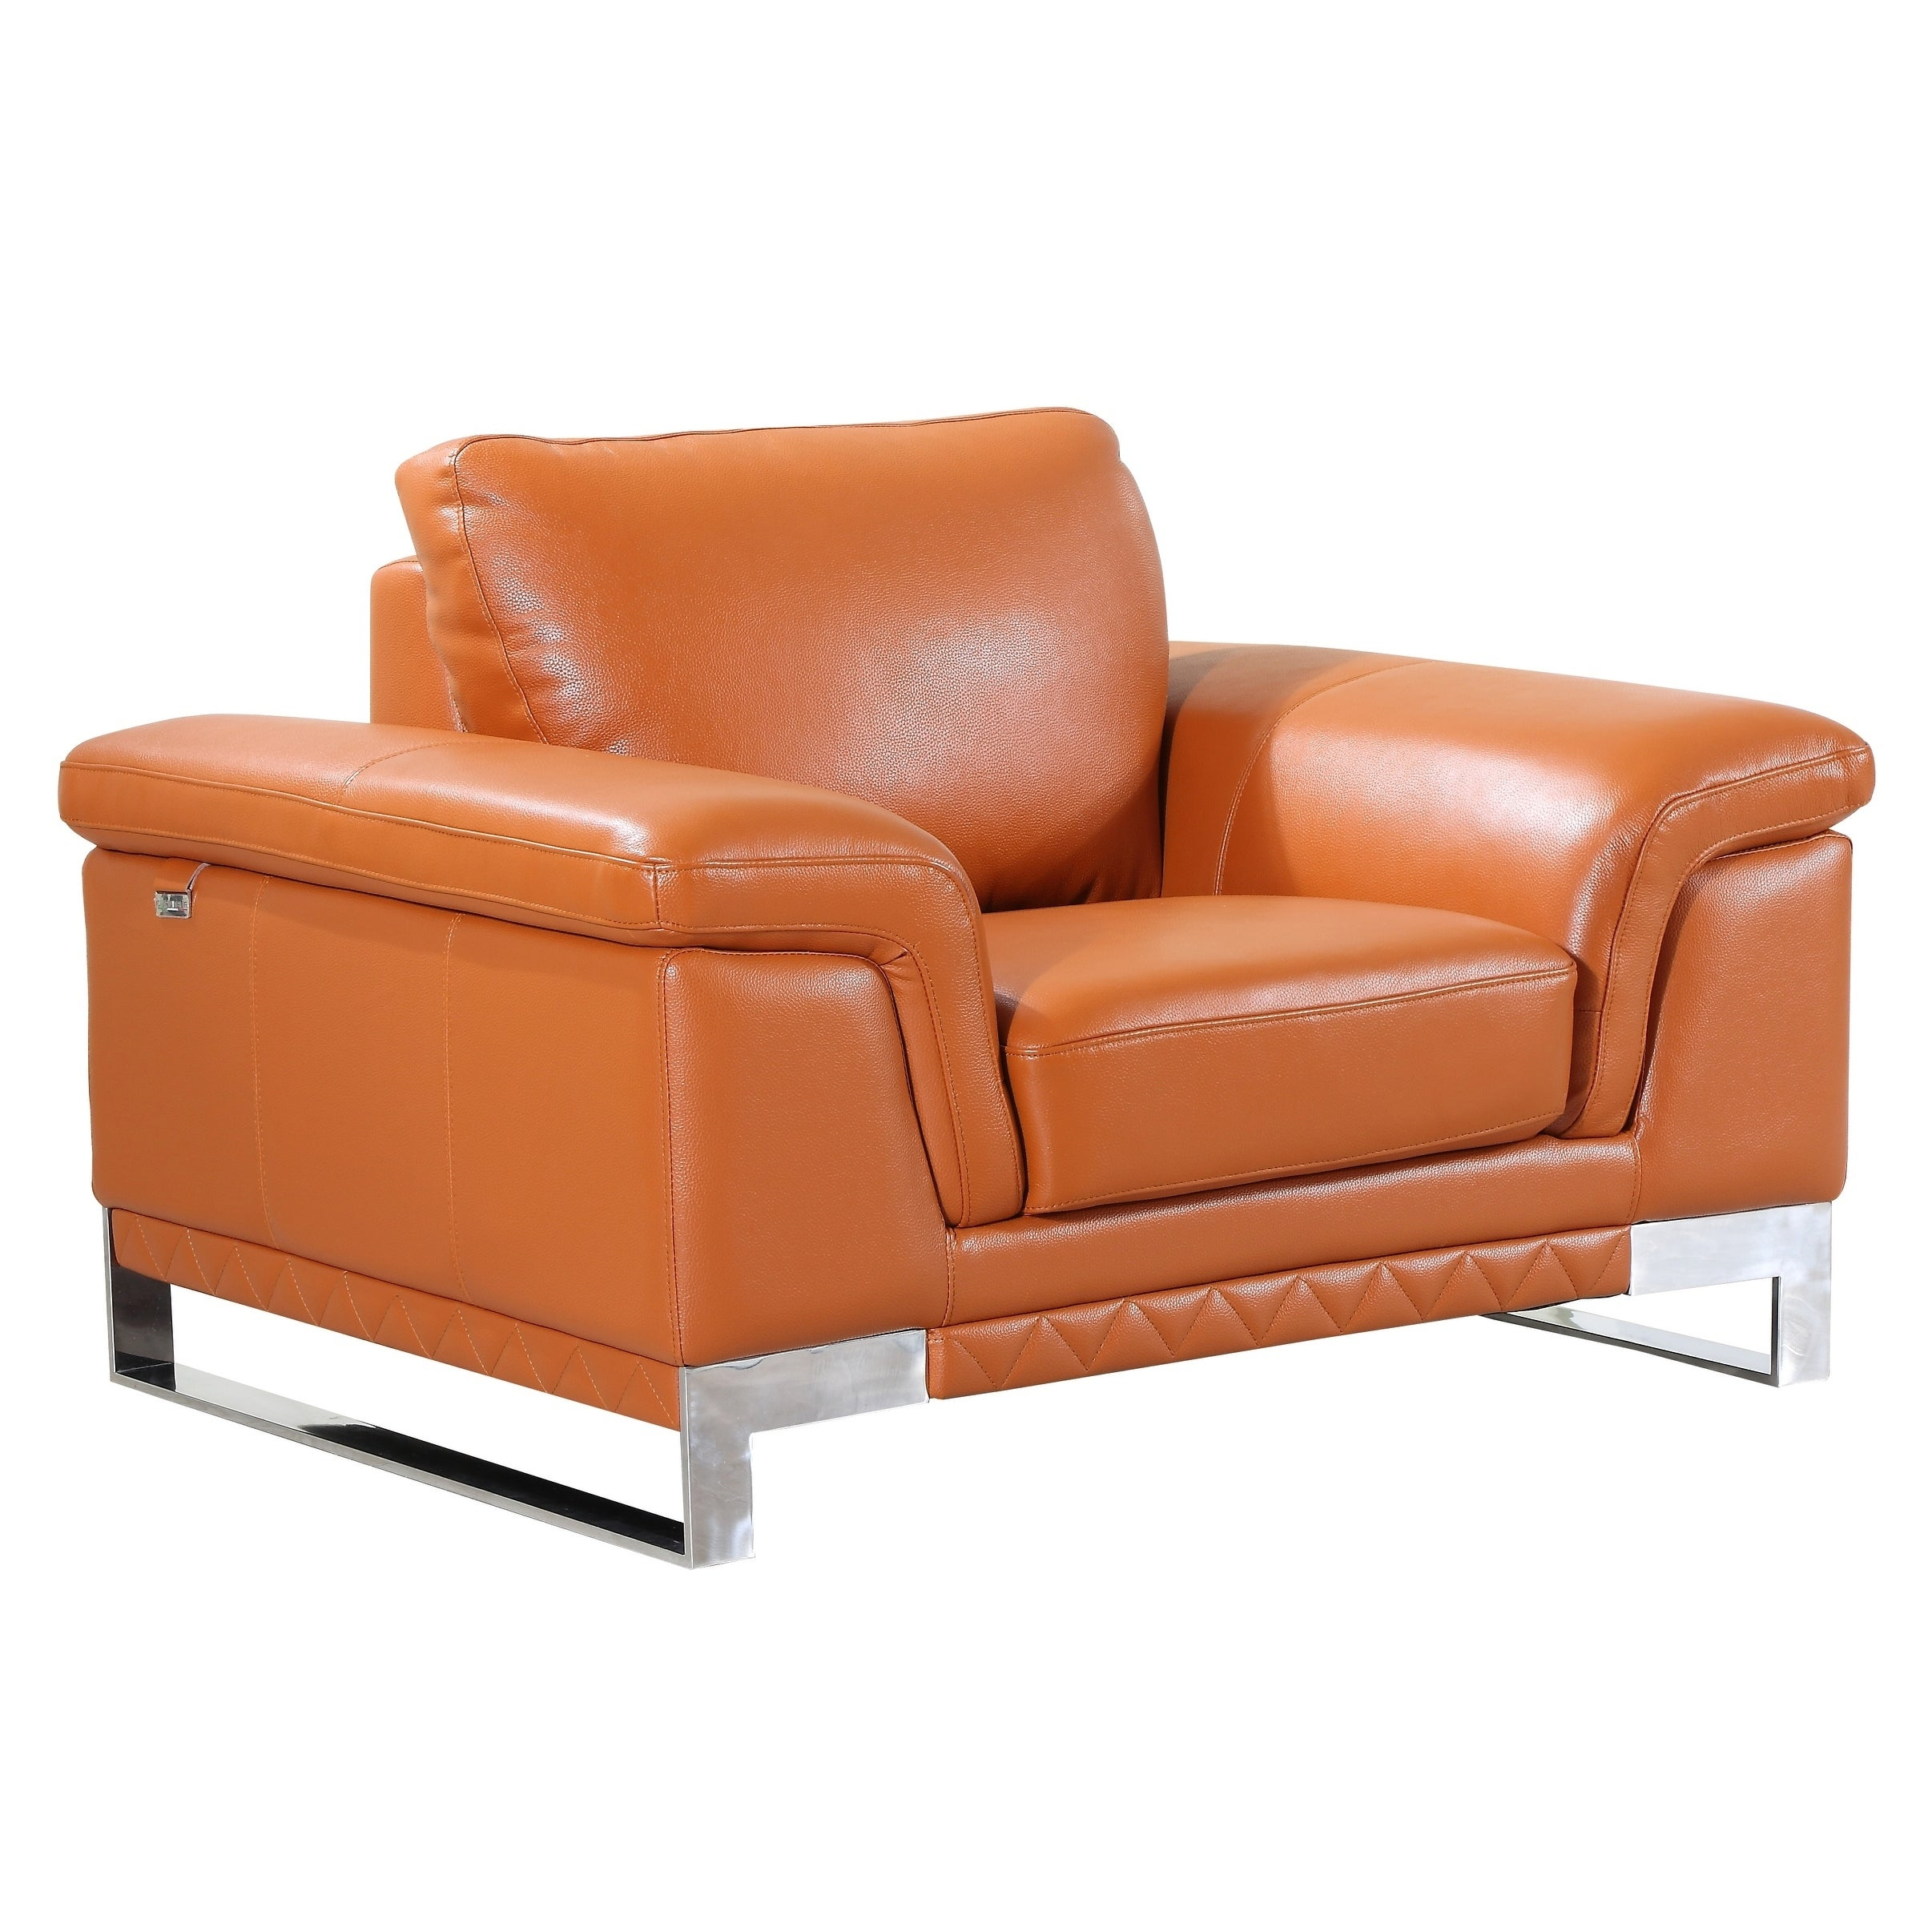 contemporary ideas upholstered awesome chairs room living livings